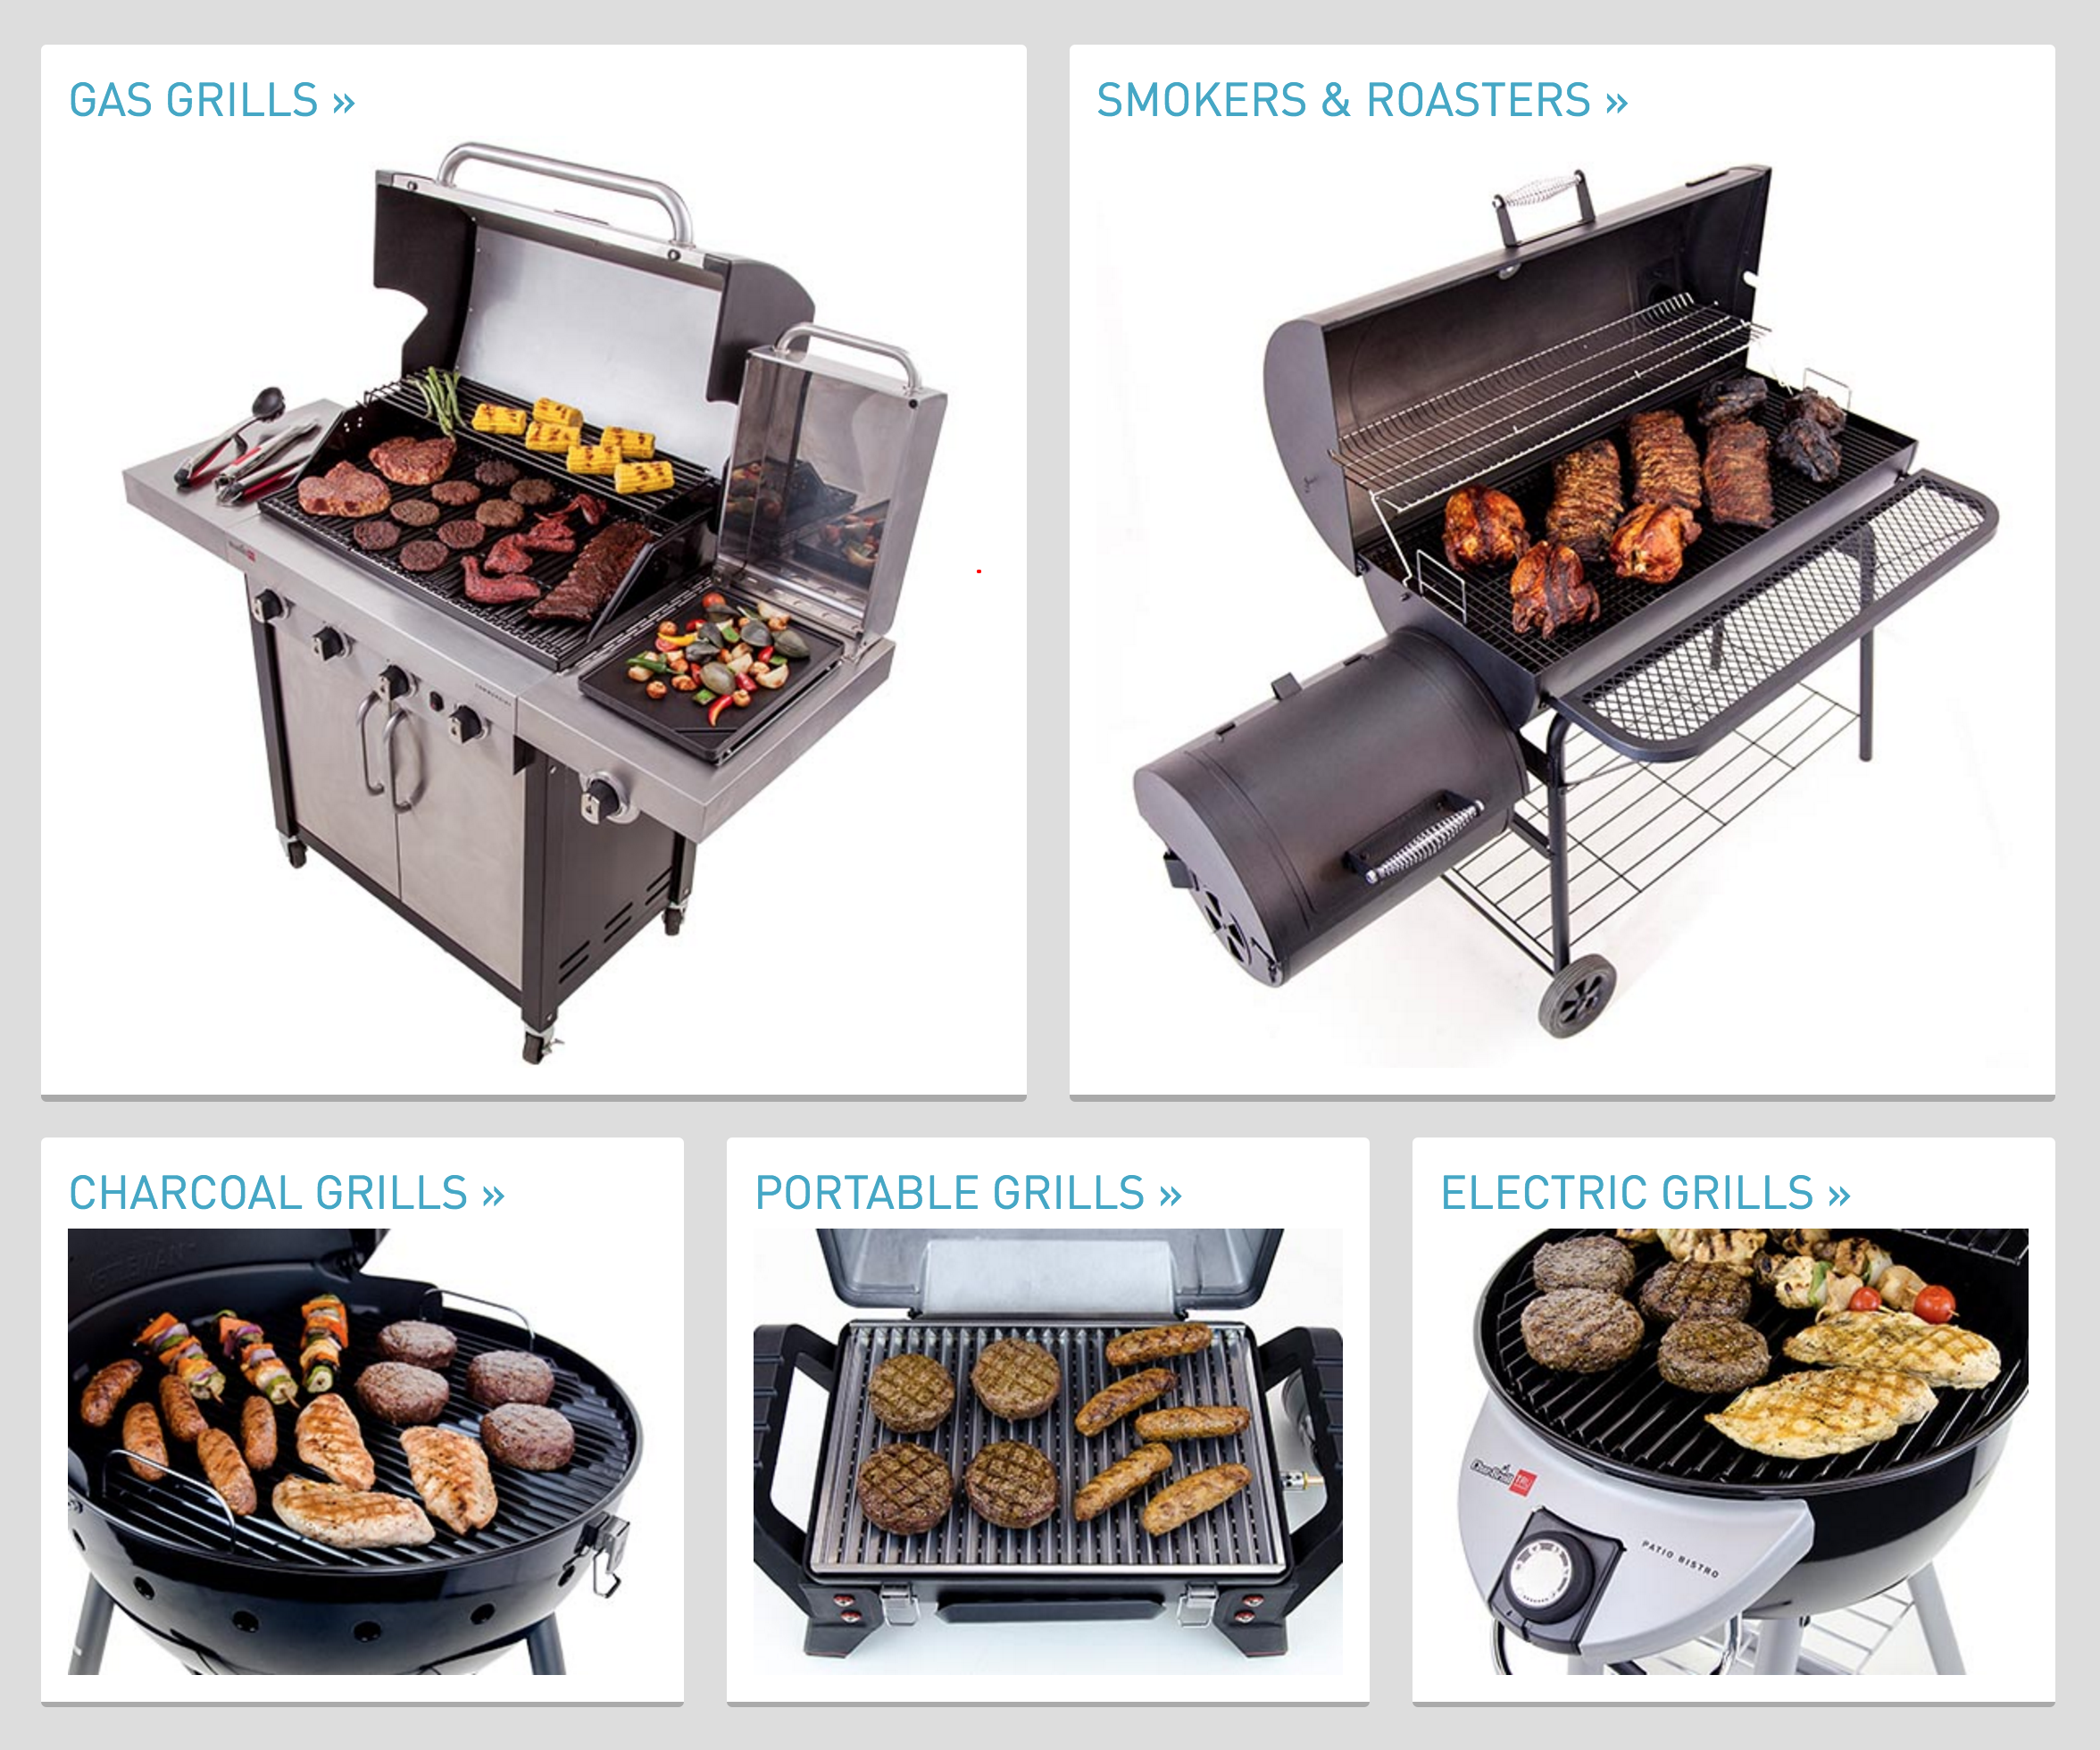 Char broil commercial series gas grill - Char Broil Homepage Char Broil Products